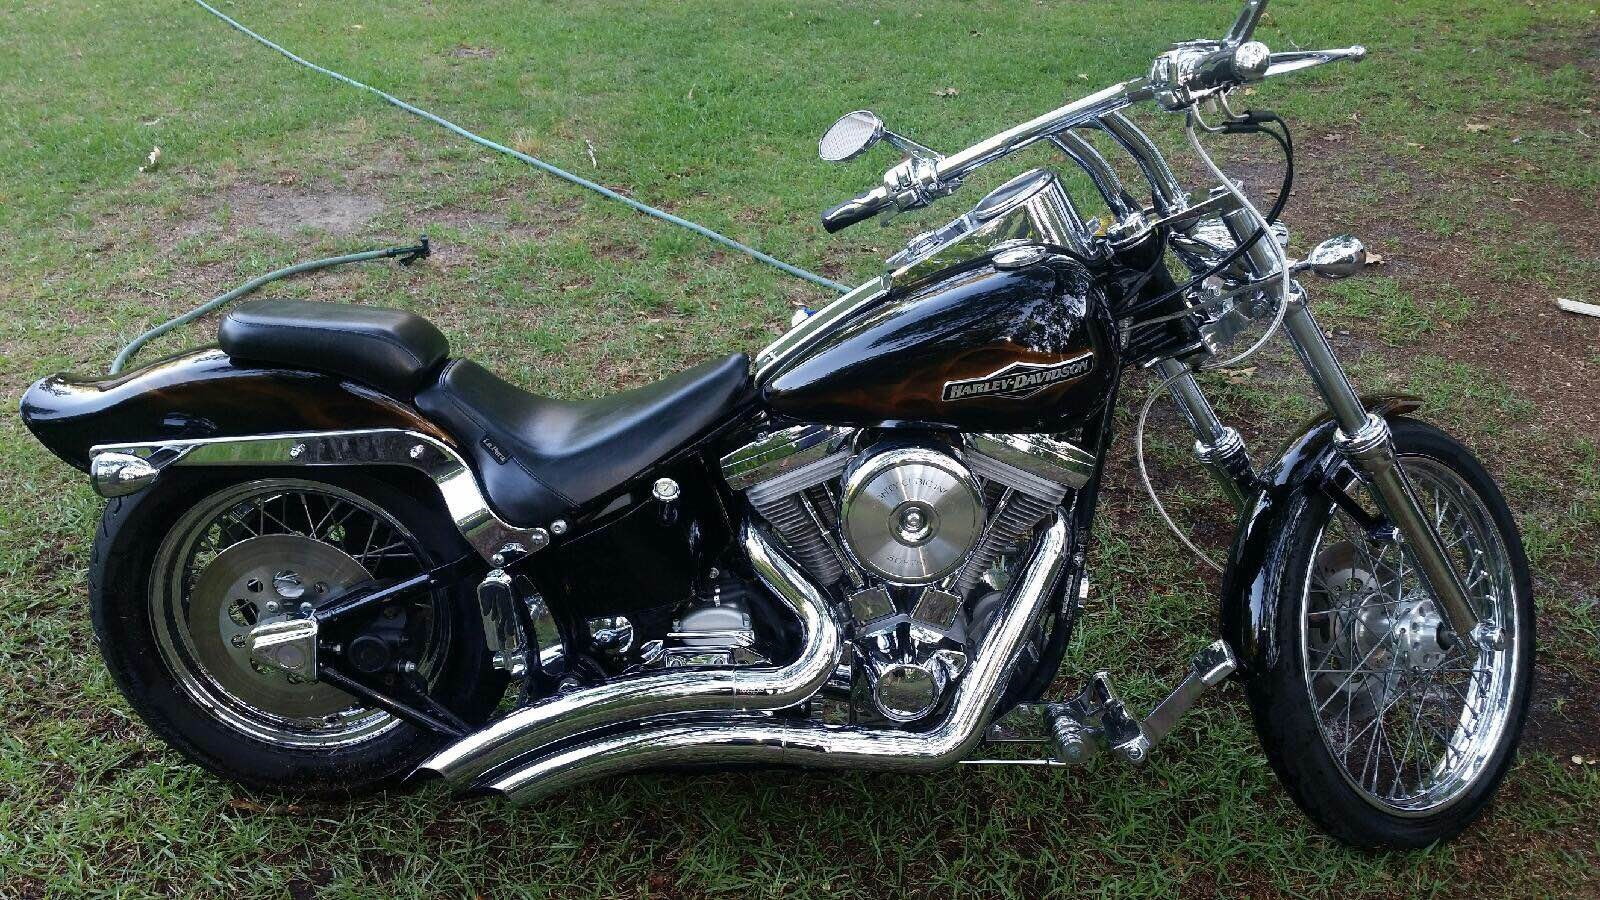 Used Harley Davidson For Sale In South Carolina